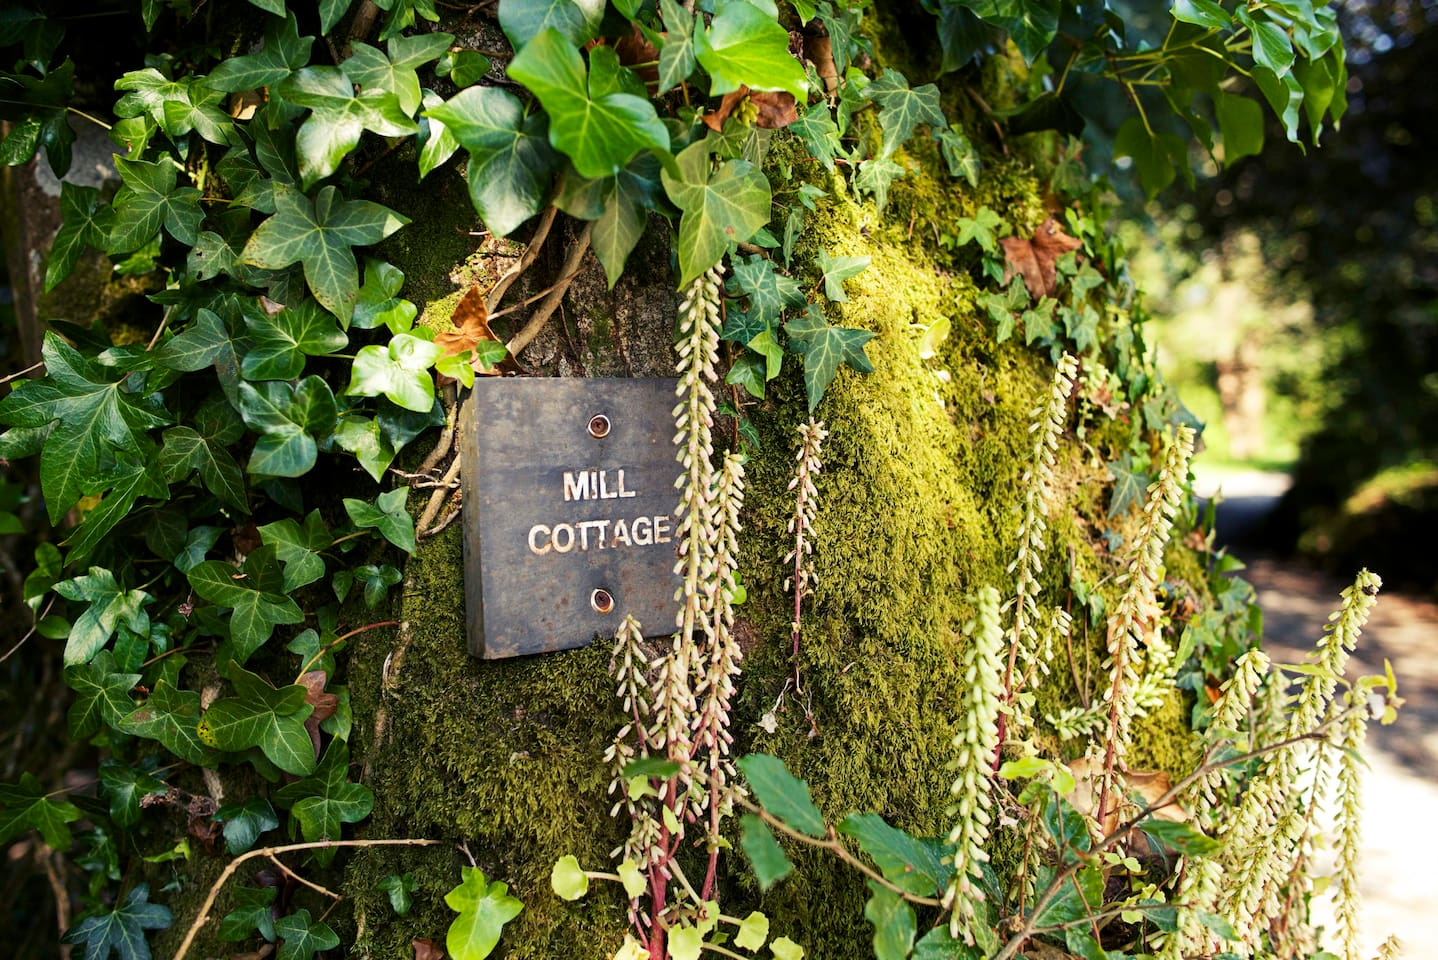 Welcome to Mill Cottage on the 18th Century Colmer Estate, nestled in a peaceful South Hams valley between wonderful Dartmoor and the breathtaking south Devon coastline.